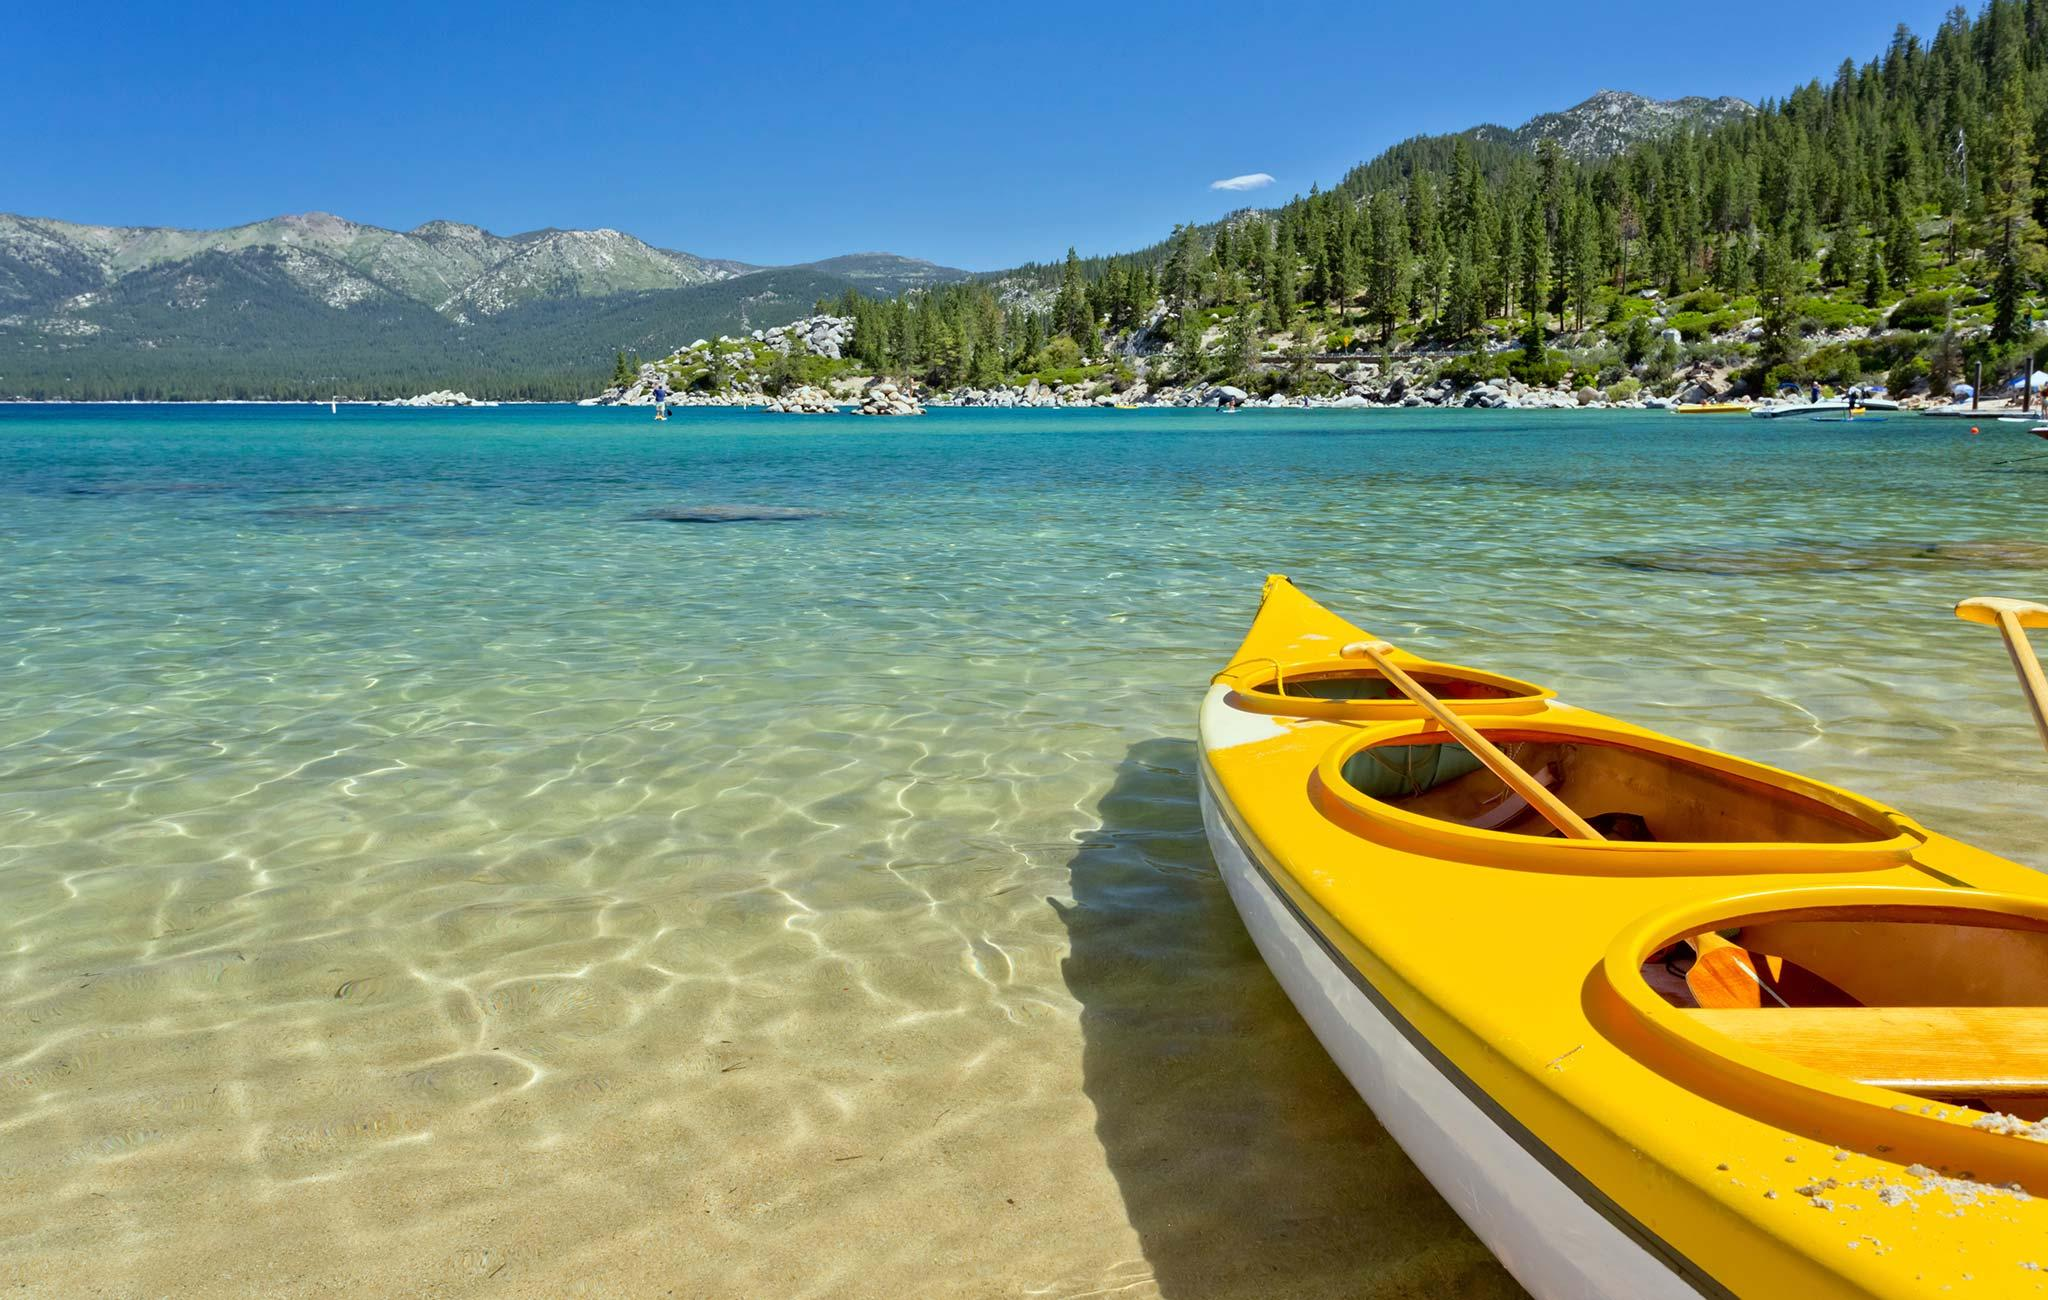 Lake Tahoe (California) Tourism: Best of Lake Tahoe (California)